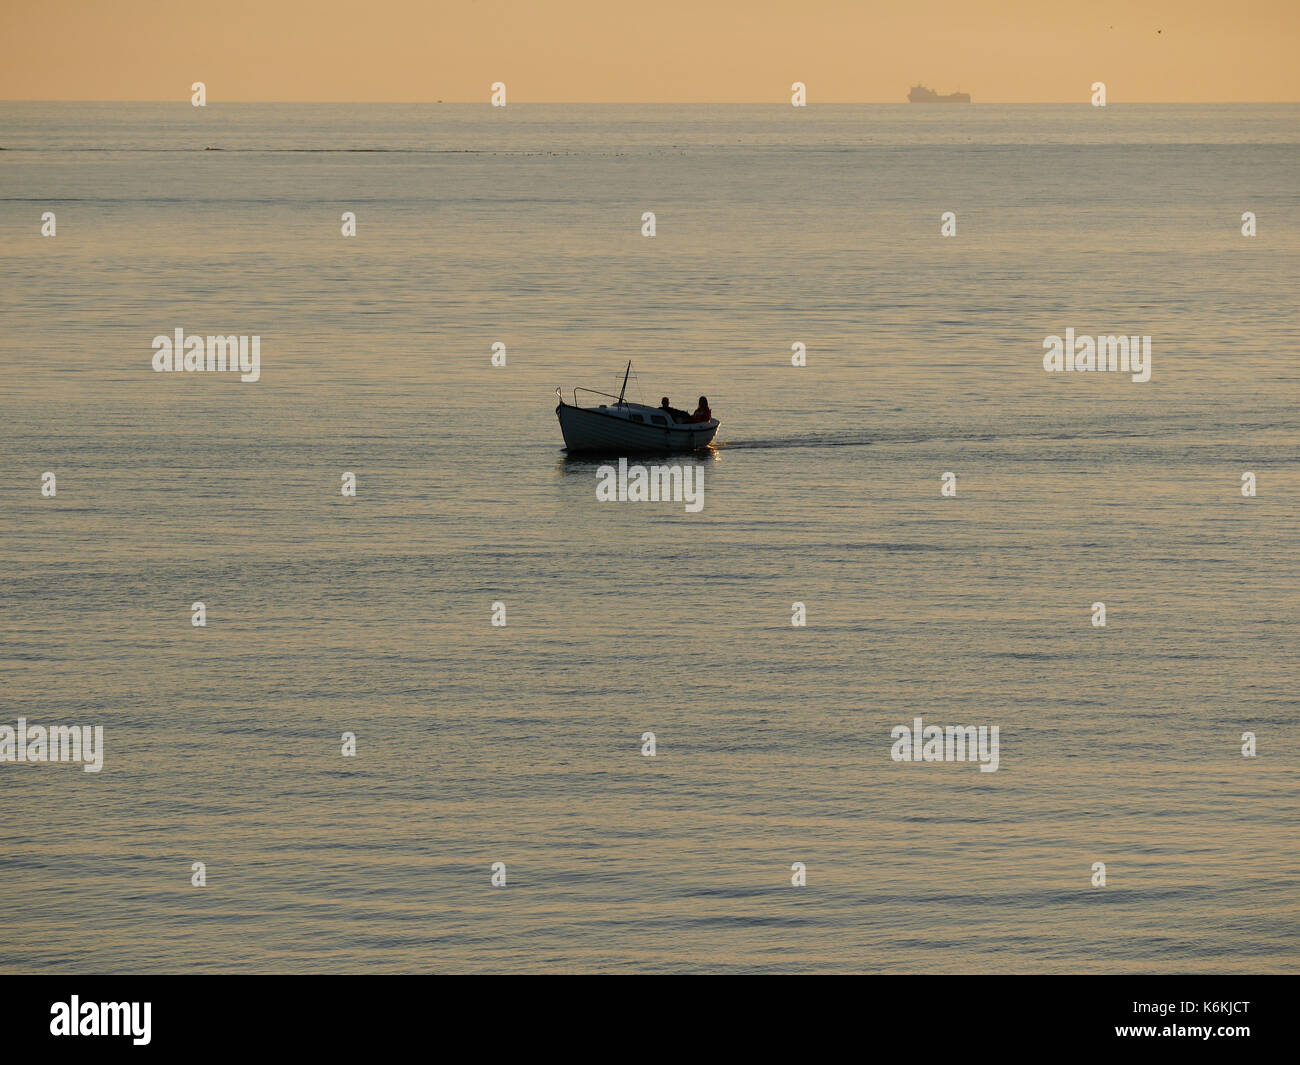 Sunset at Hönö, Klåva in the archipelago of Gothenburg. Boat with two persons on passing by, freight ship in the background. Stock Photo